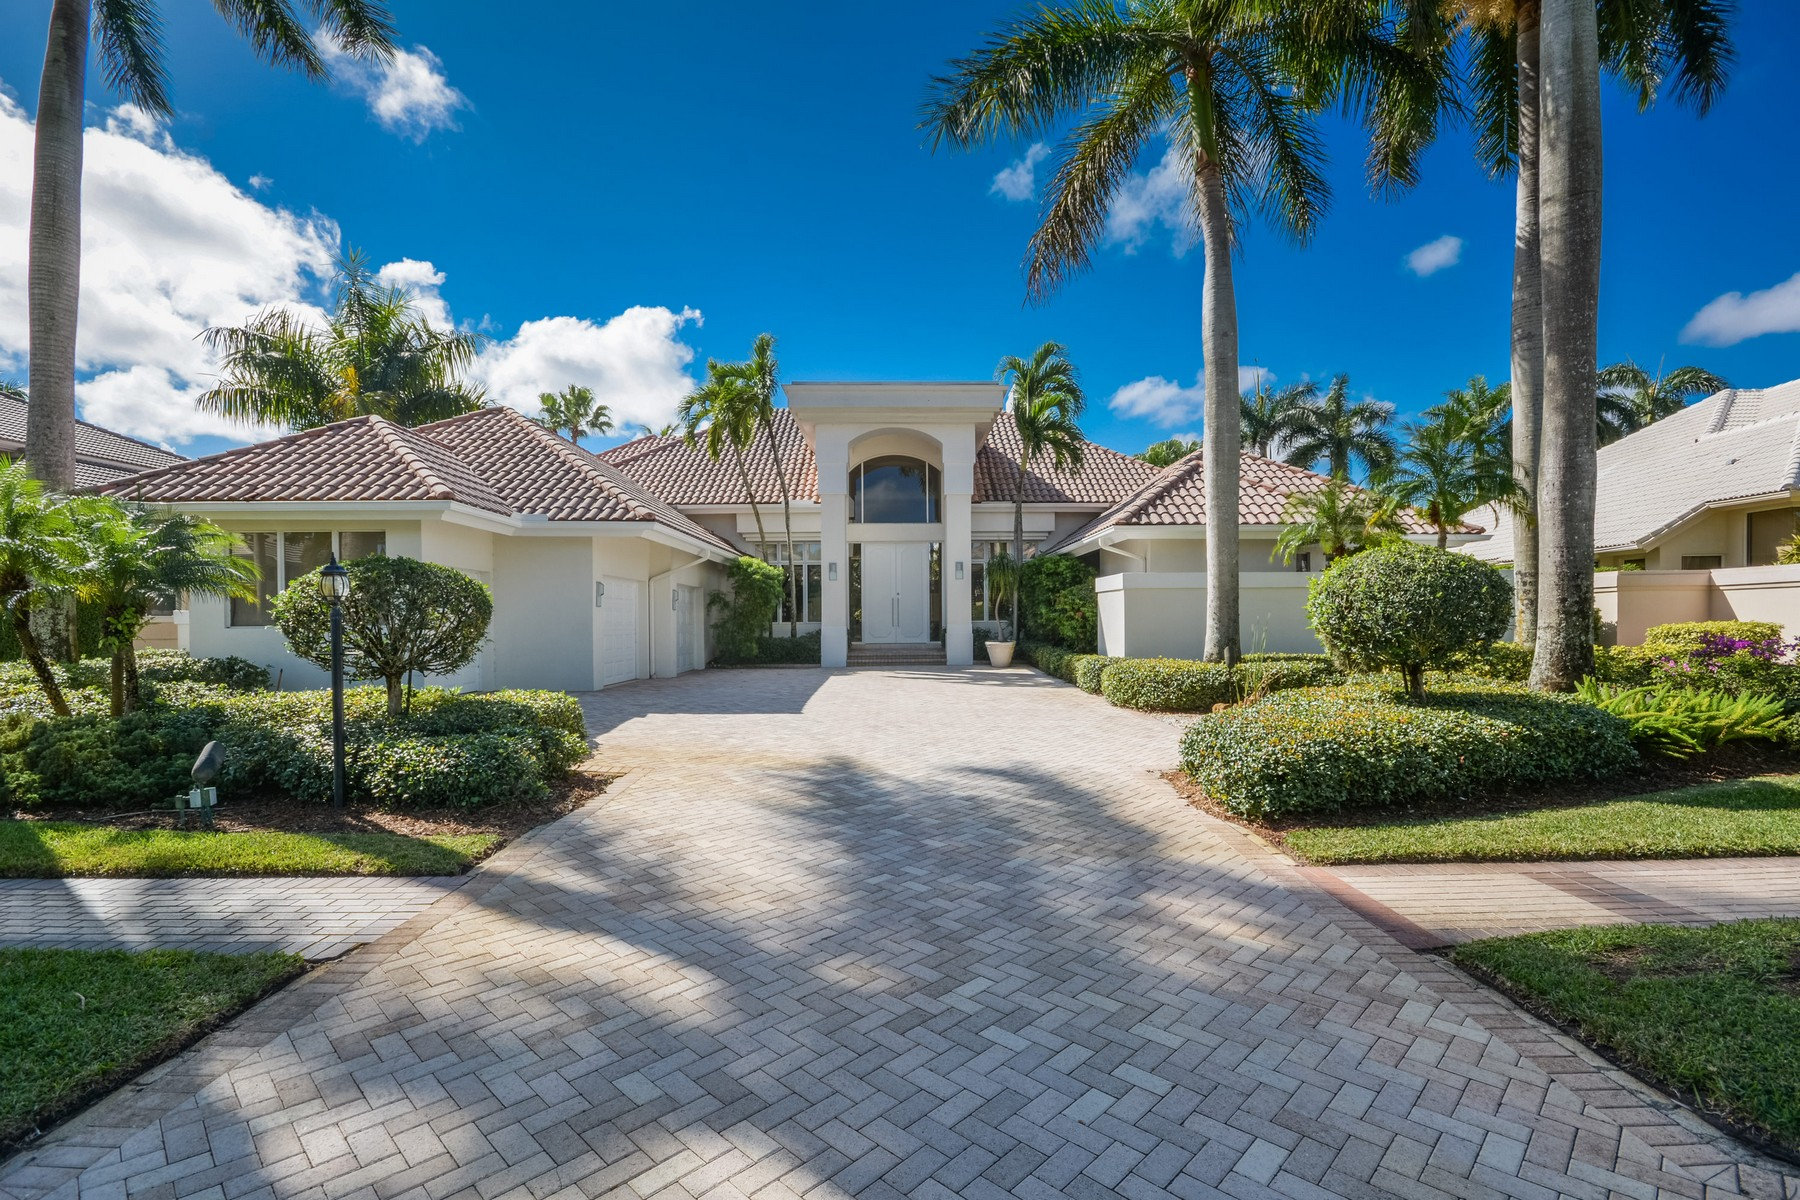 Villa per Vendita alle ore 7244 Queenferry Cir , Boca Raton, FL 33496 7244 Queenferry Cir Boca Raton, Florida, 33496 Stati Uniti